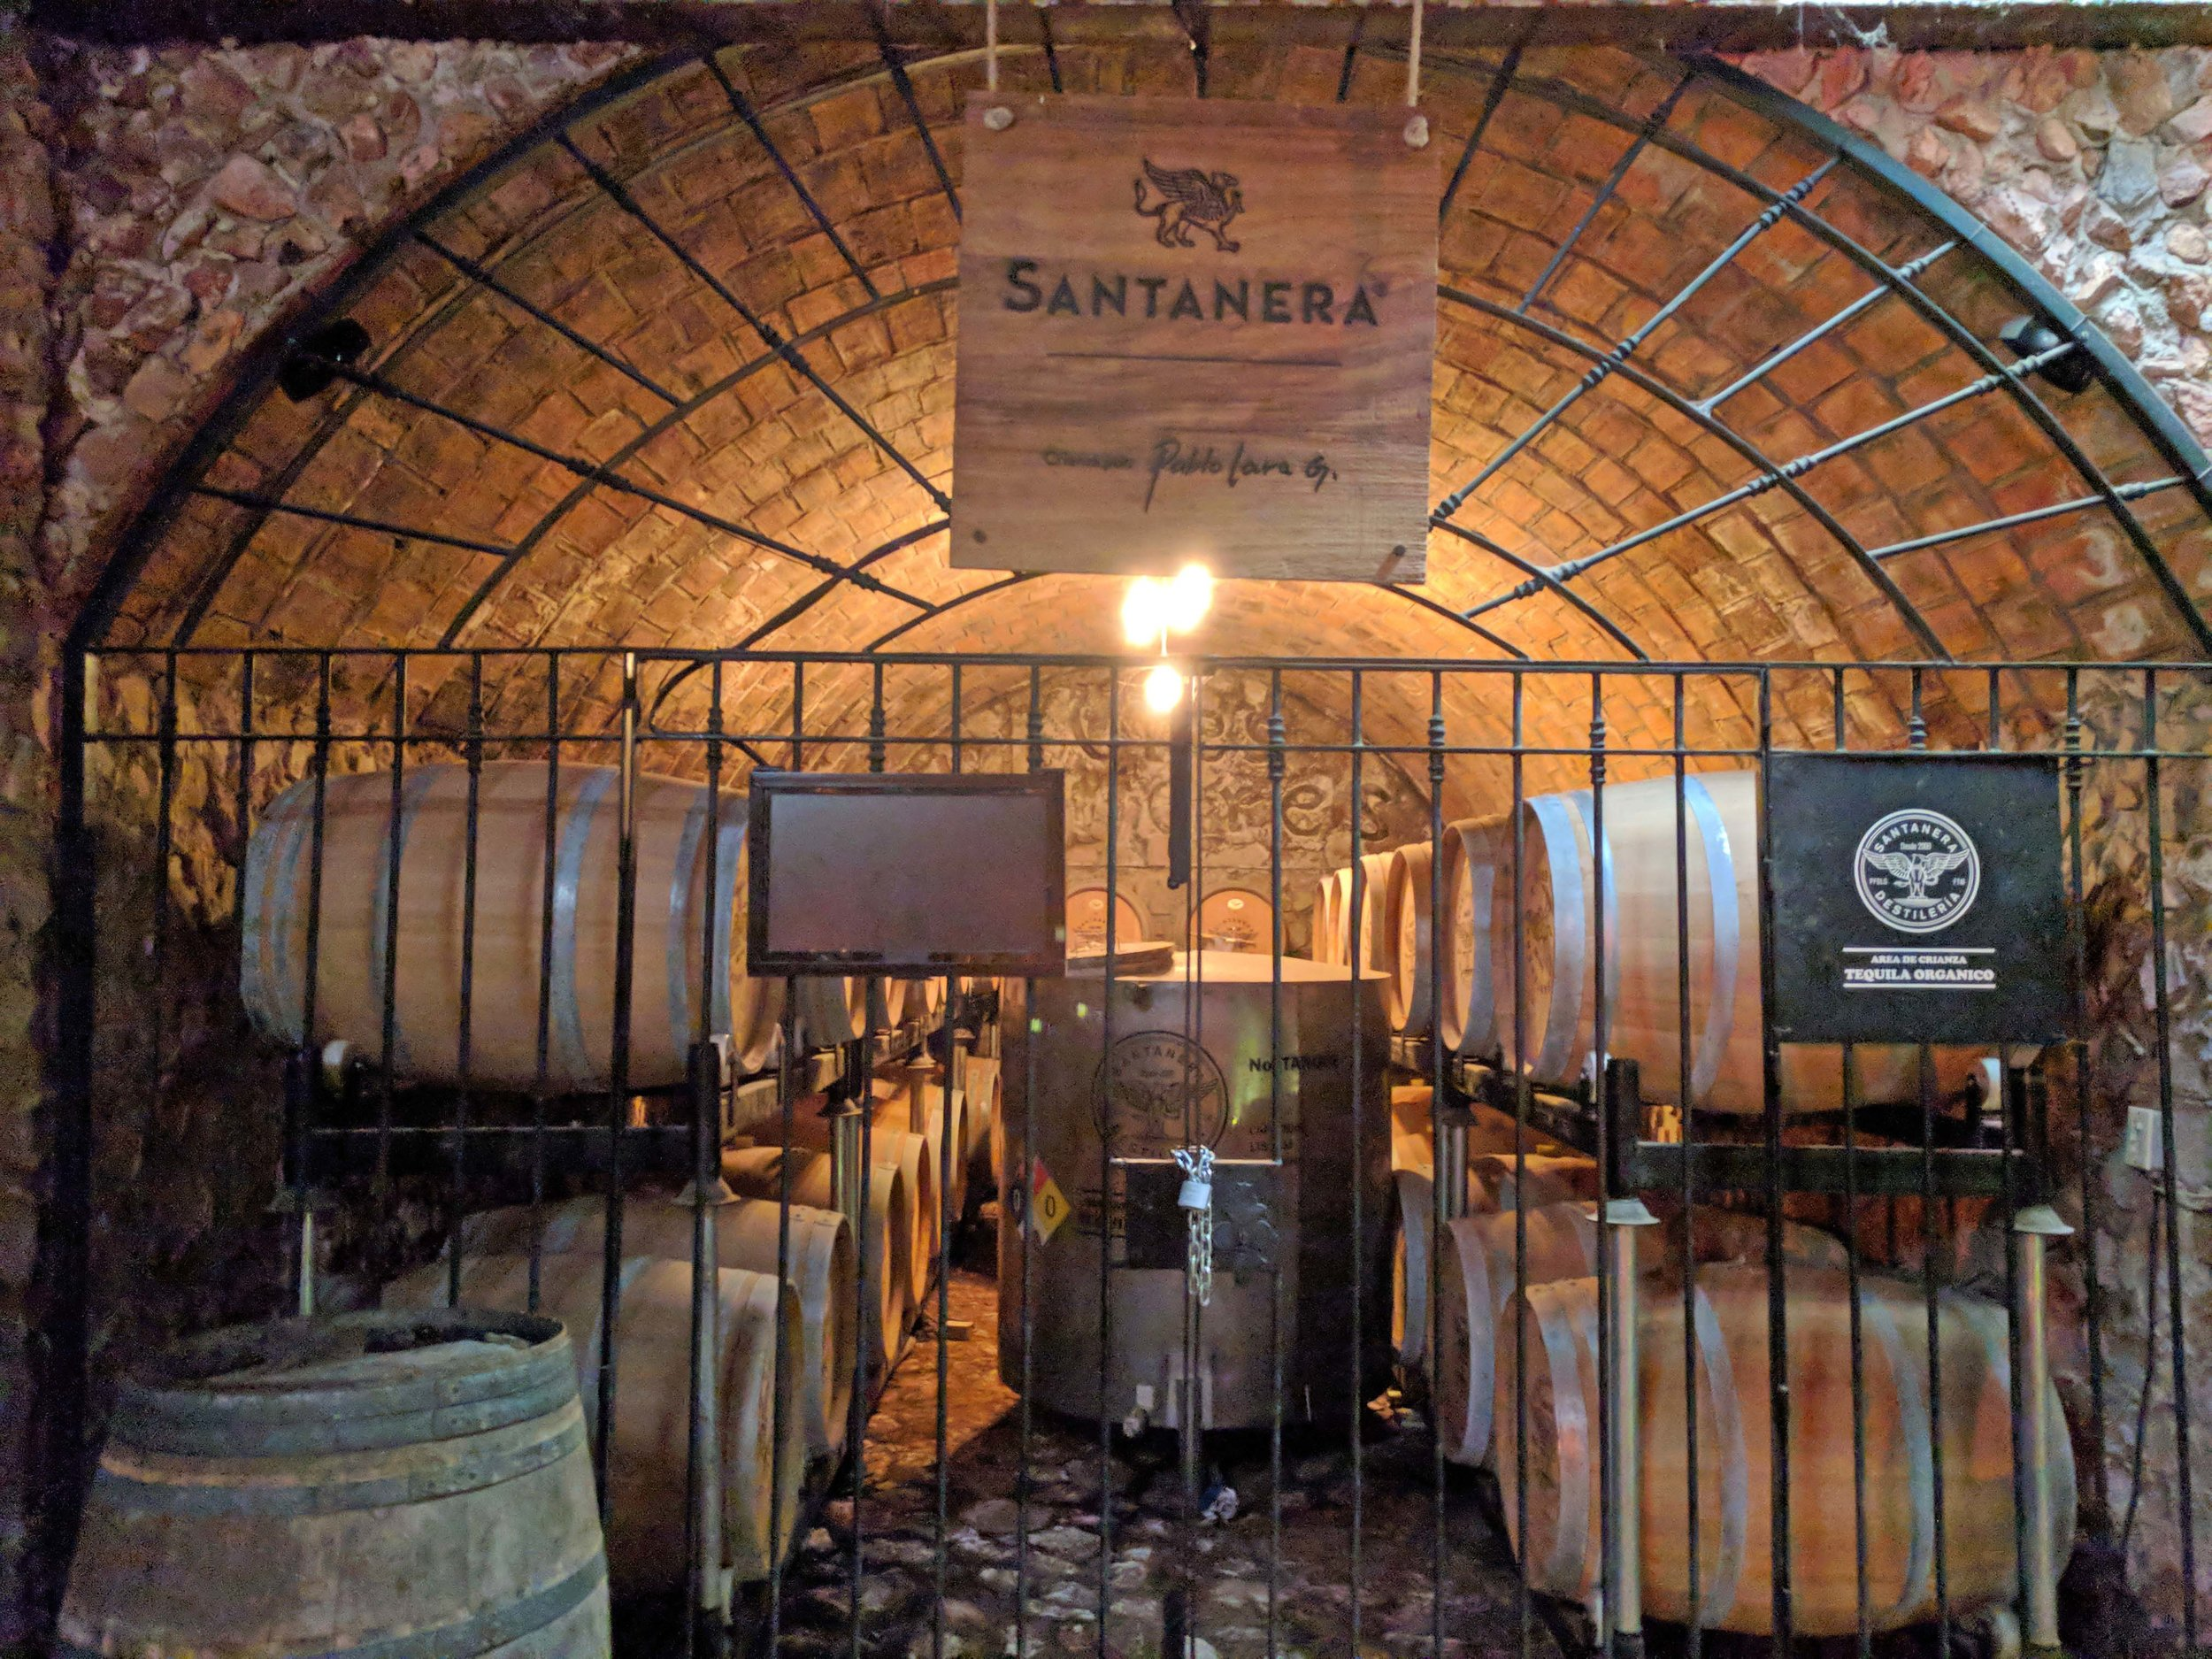 Tequila aging and bathed in classical music